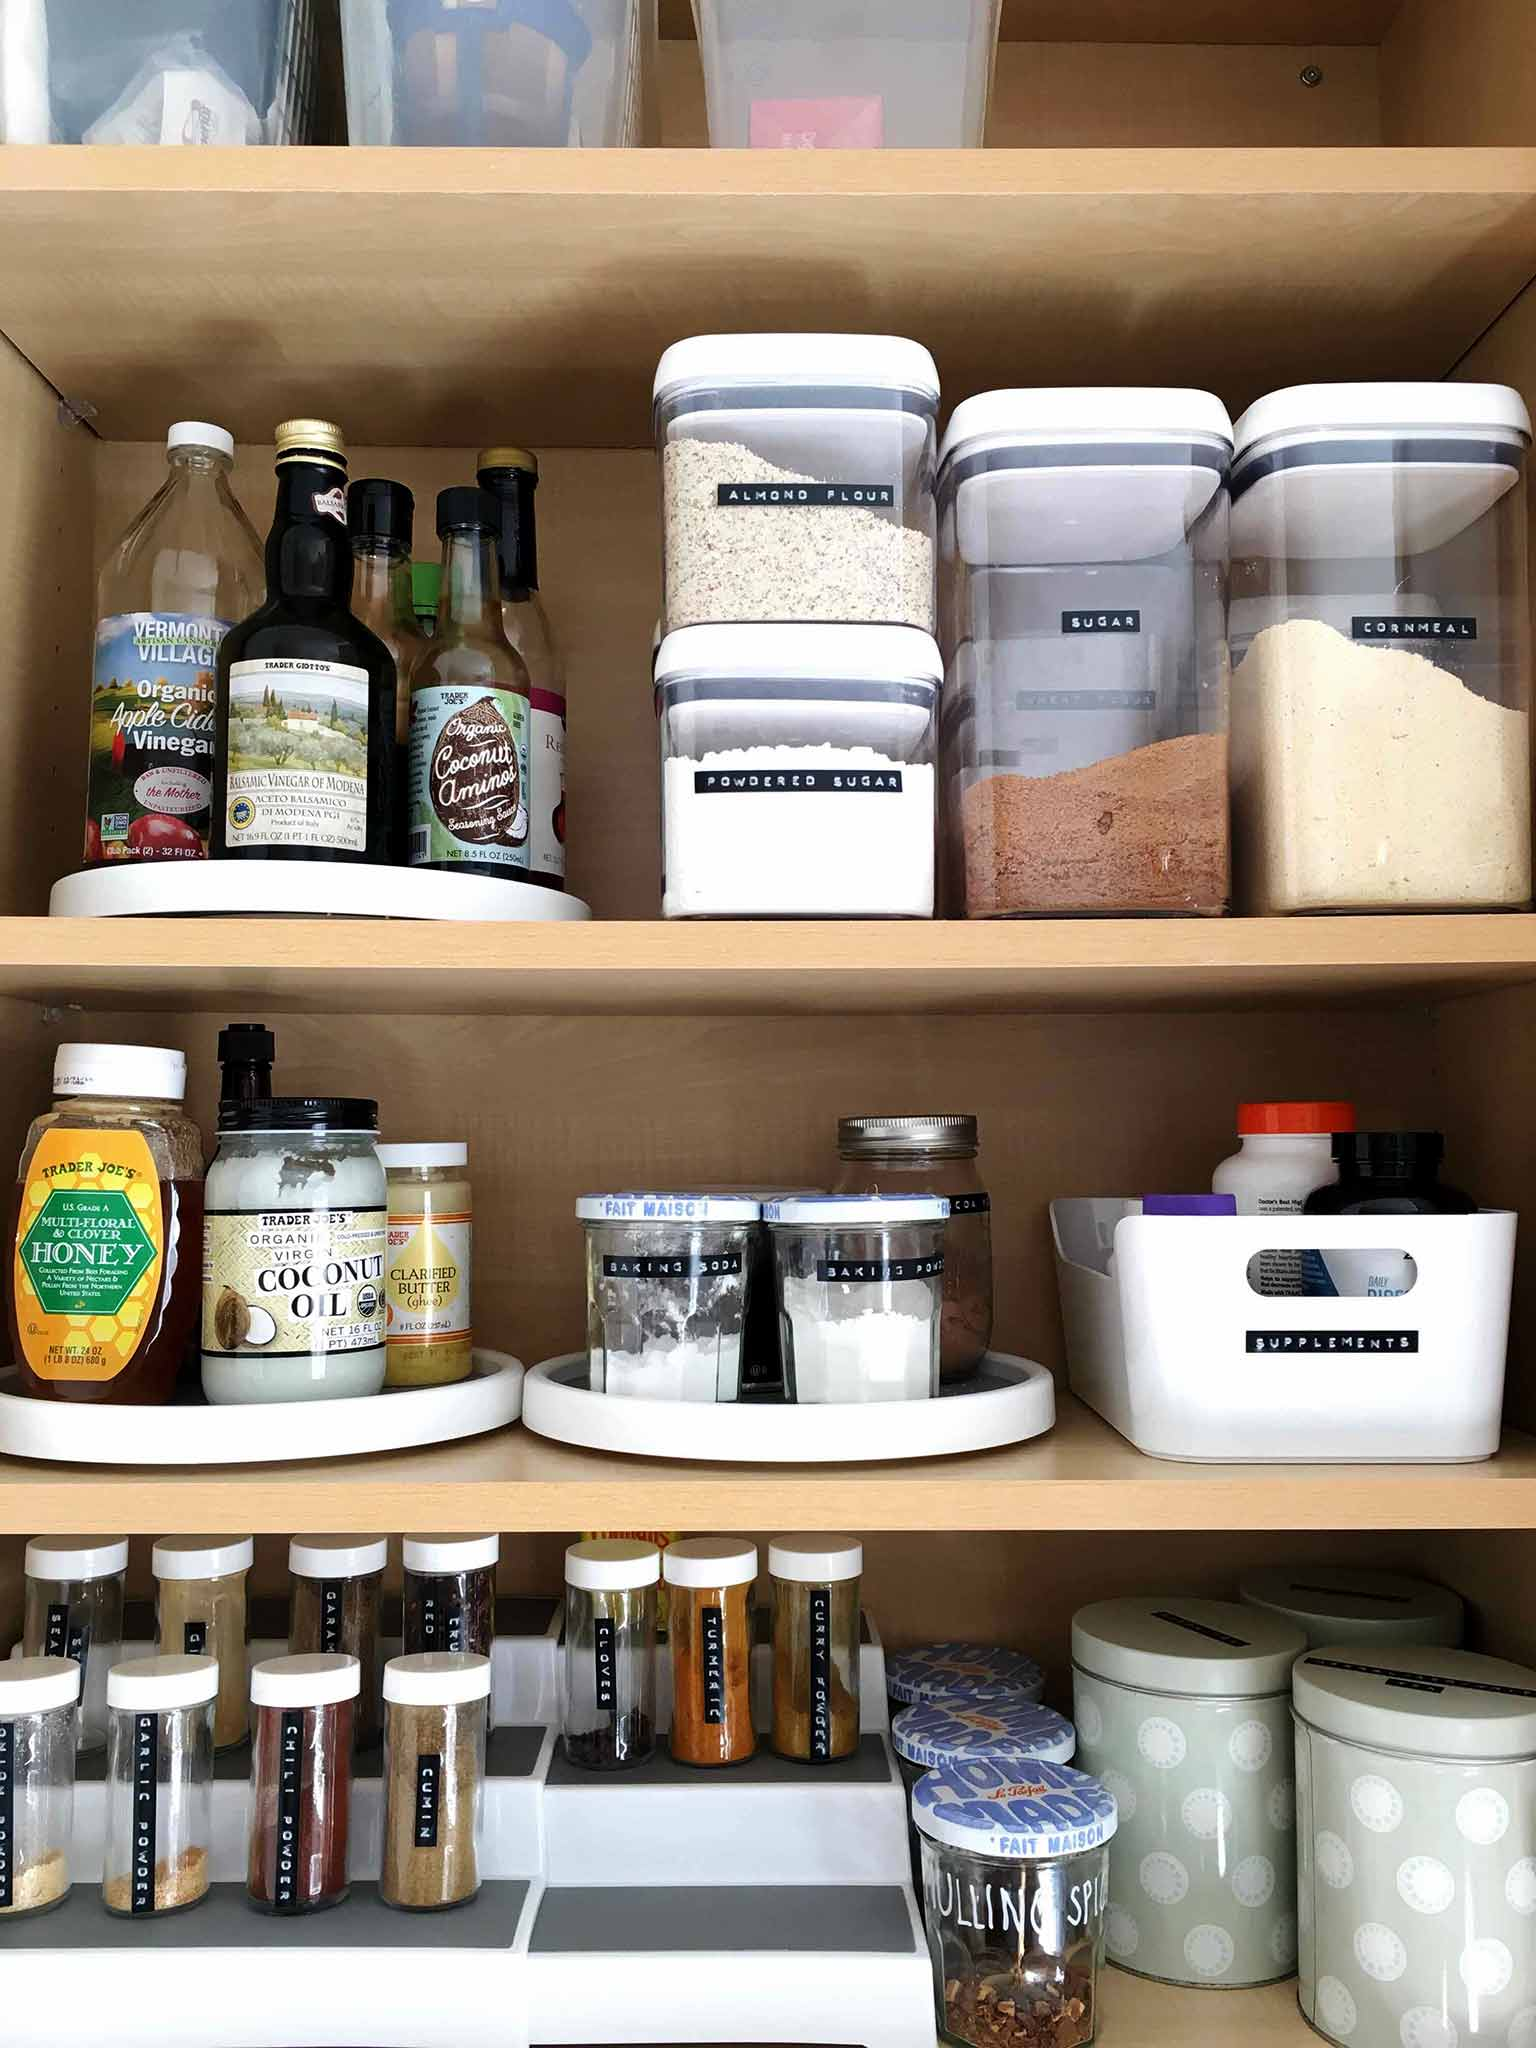 Efficient Pantry And Food Storage Organization For Small Spaces | That  Homebird Life